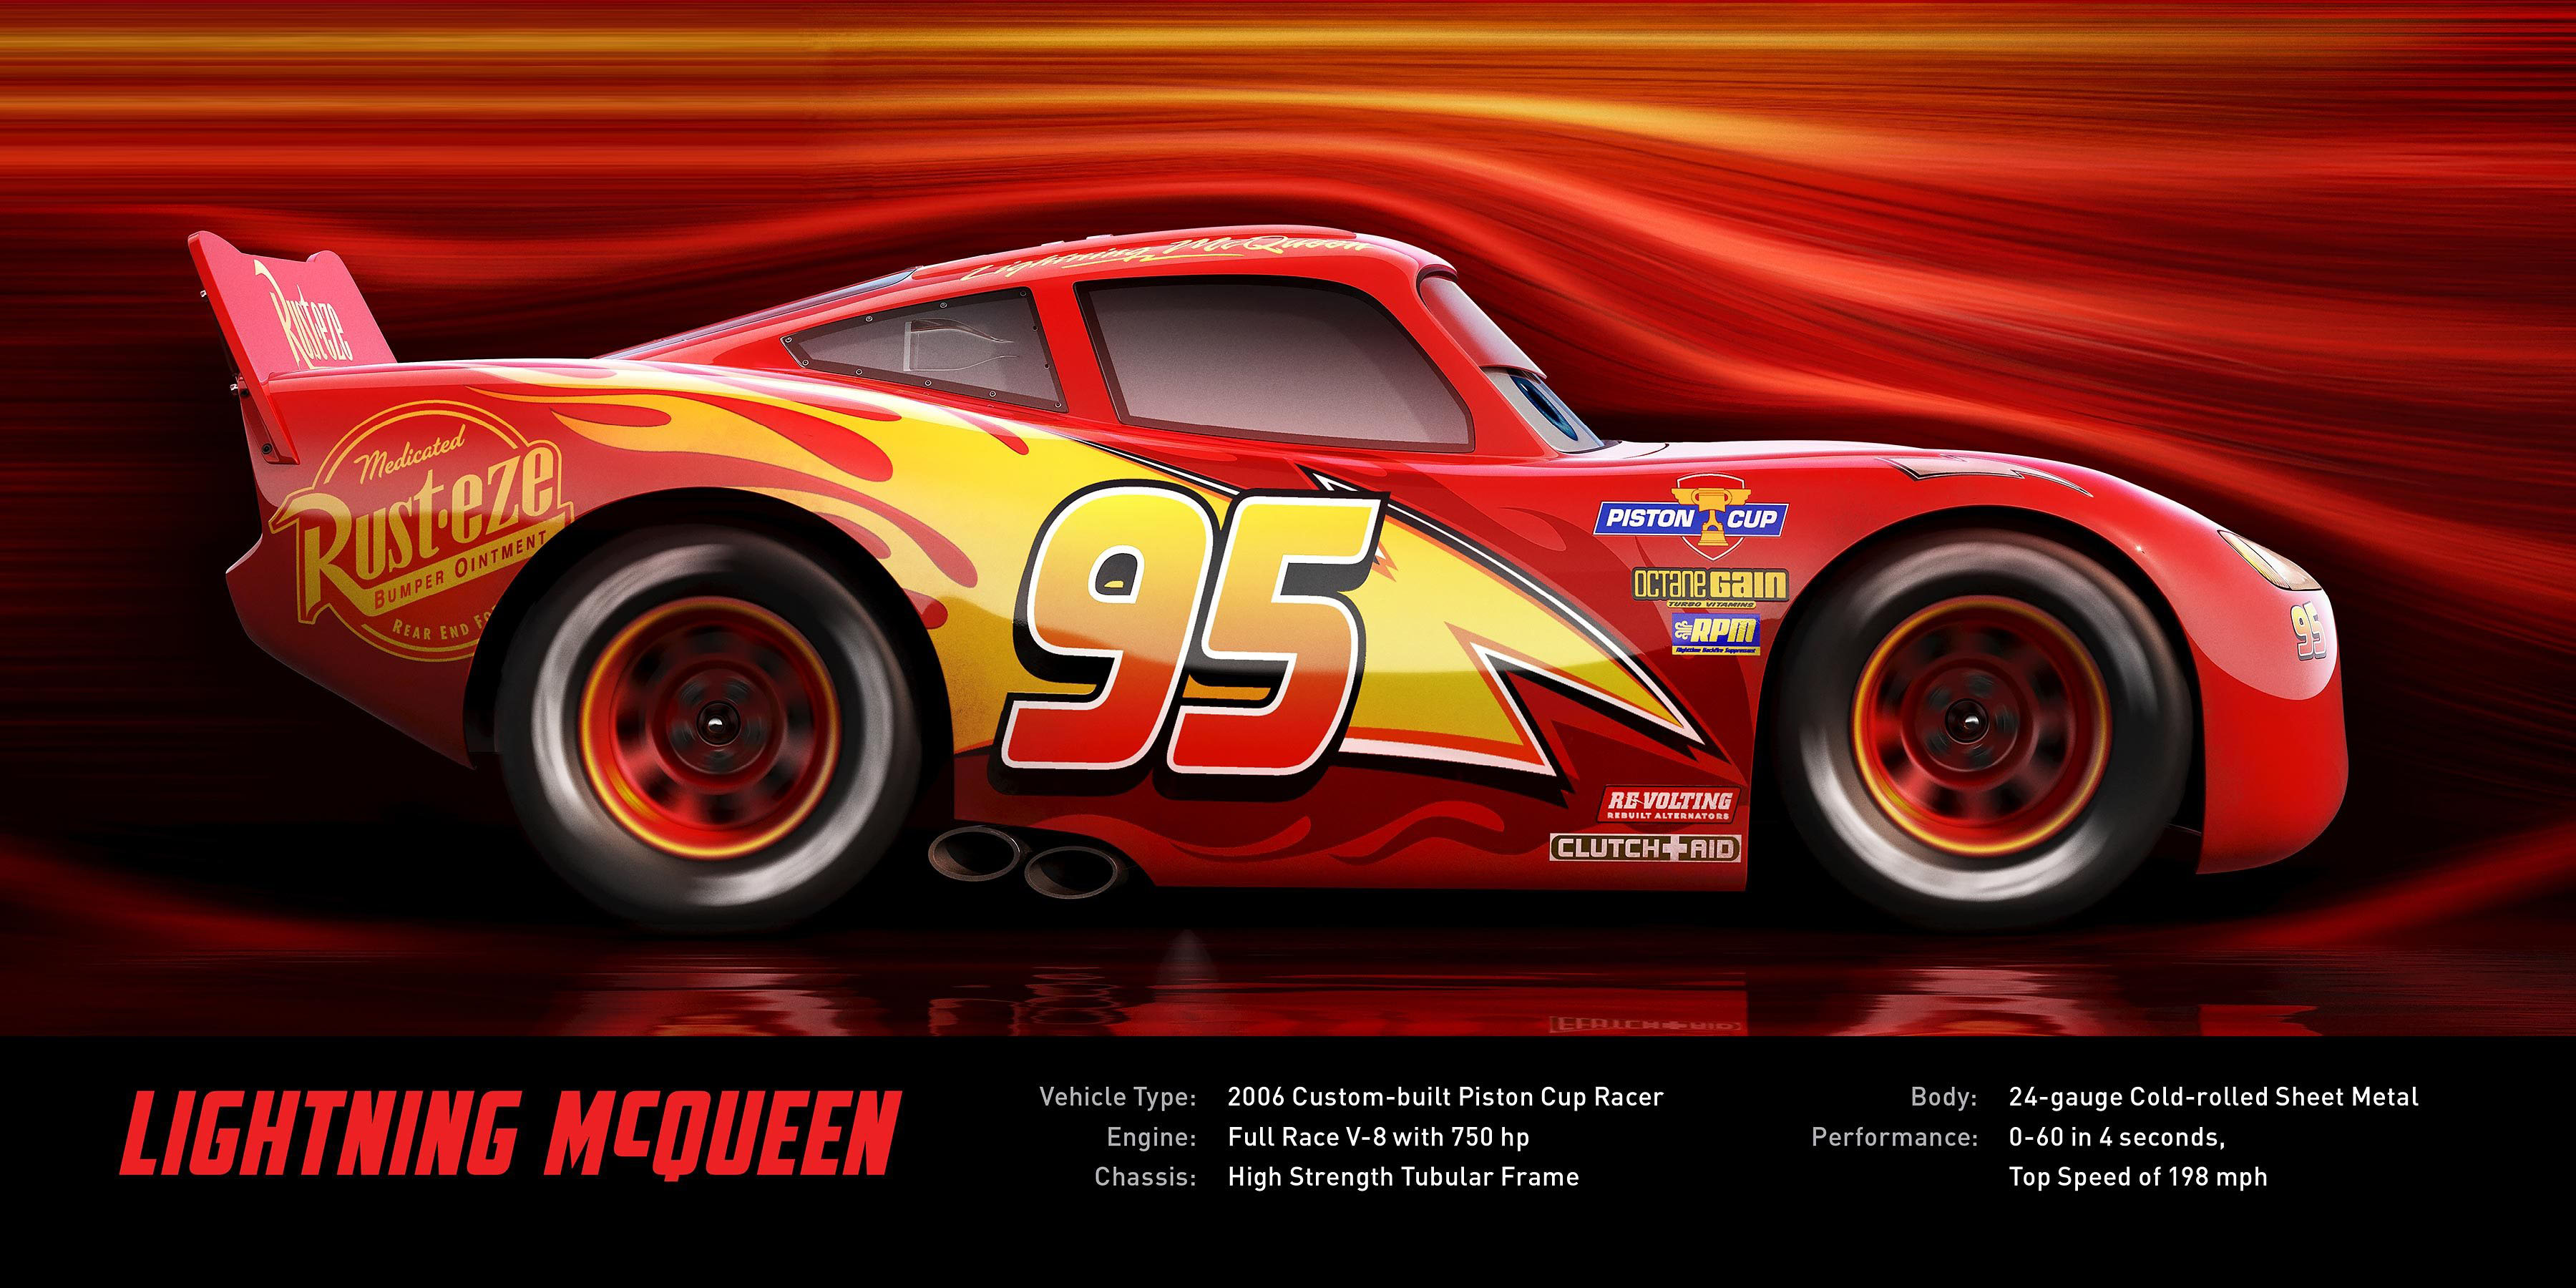 Disney Cars 3 Lightning Mcqueen Specifications Hd Wallpaper